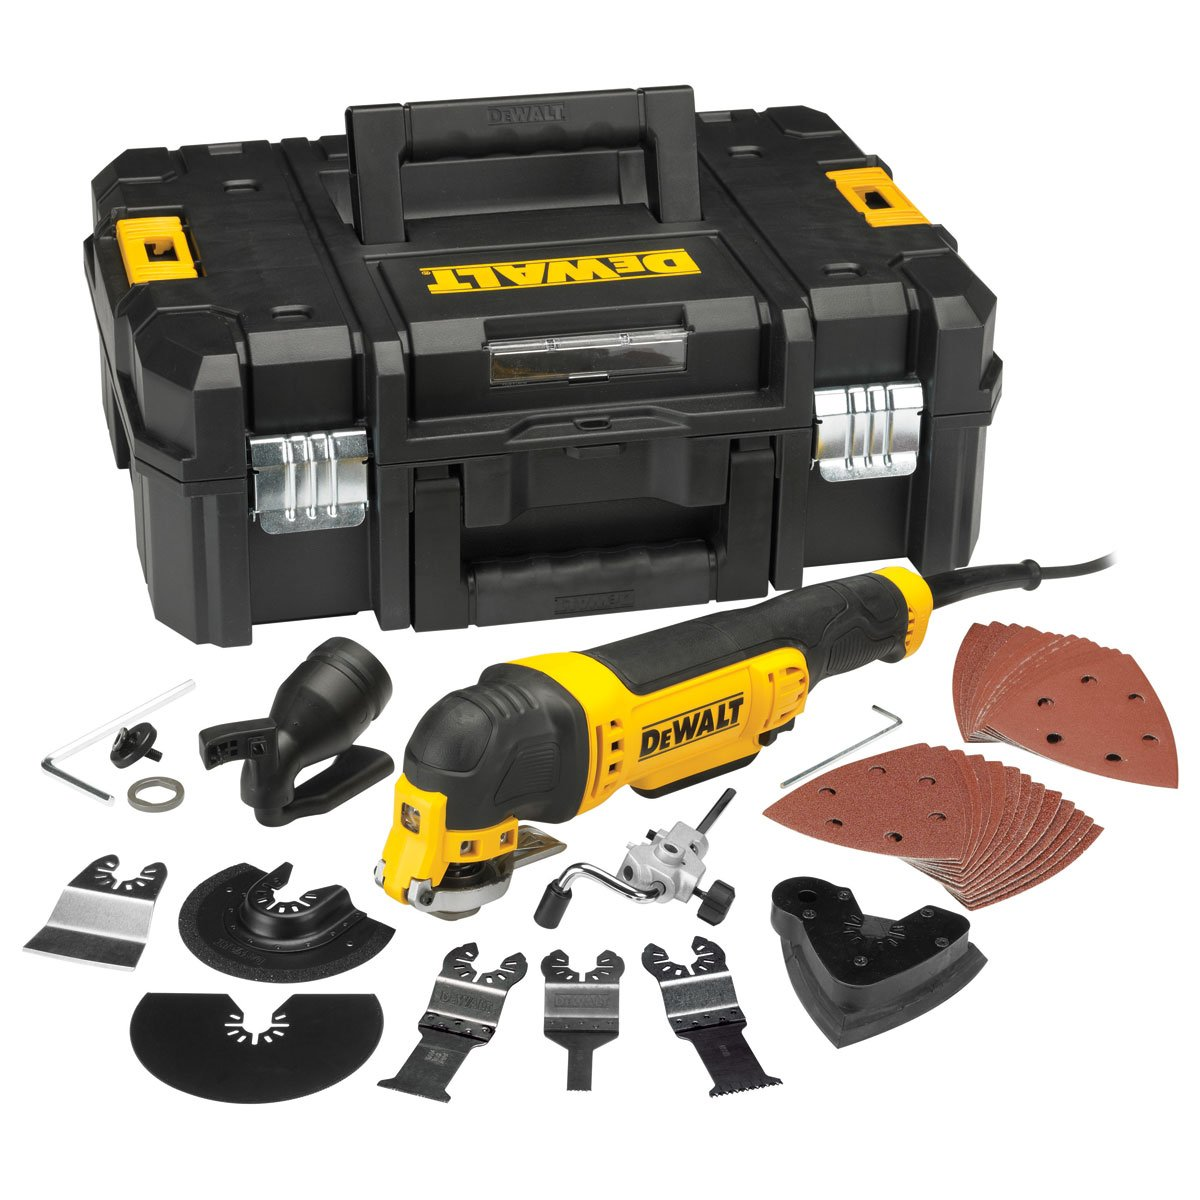 300 W Large 110 V Dewalt DWE315KT-LX Oscillating Multi Quick Change Tool Release in TStak Case with 37 Accessories 110V Yellow